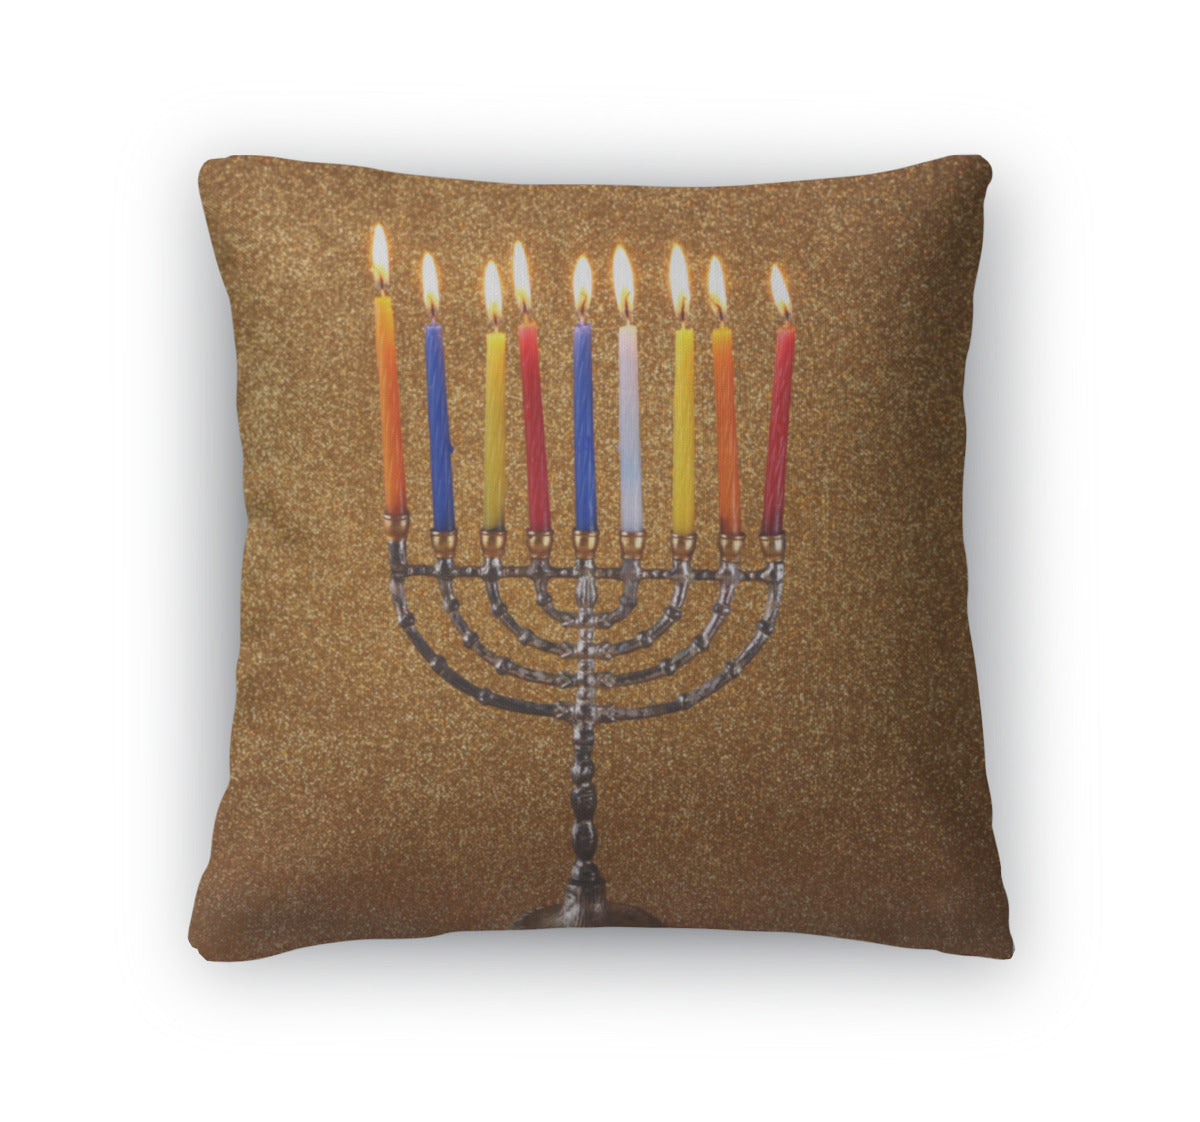 Throw Pillow, Menorah With Candels And Glitter Lights Hanukkah Concept - fashionbests